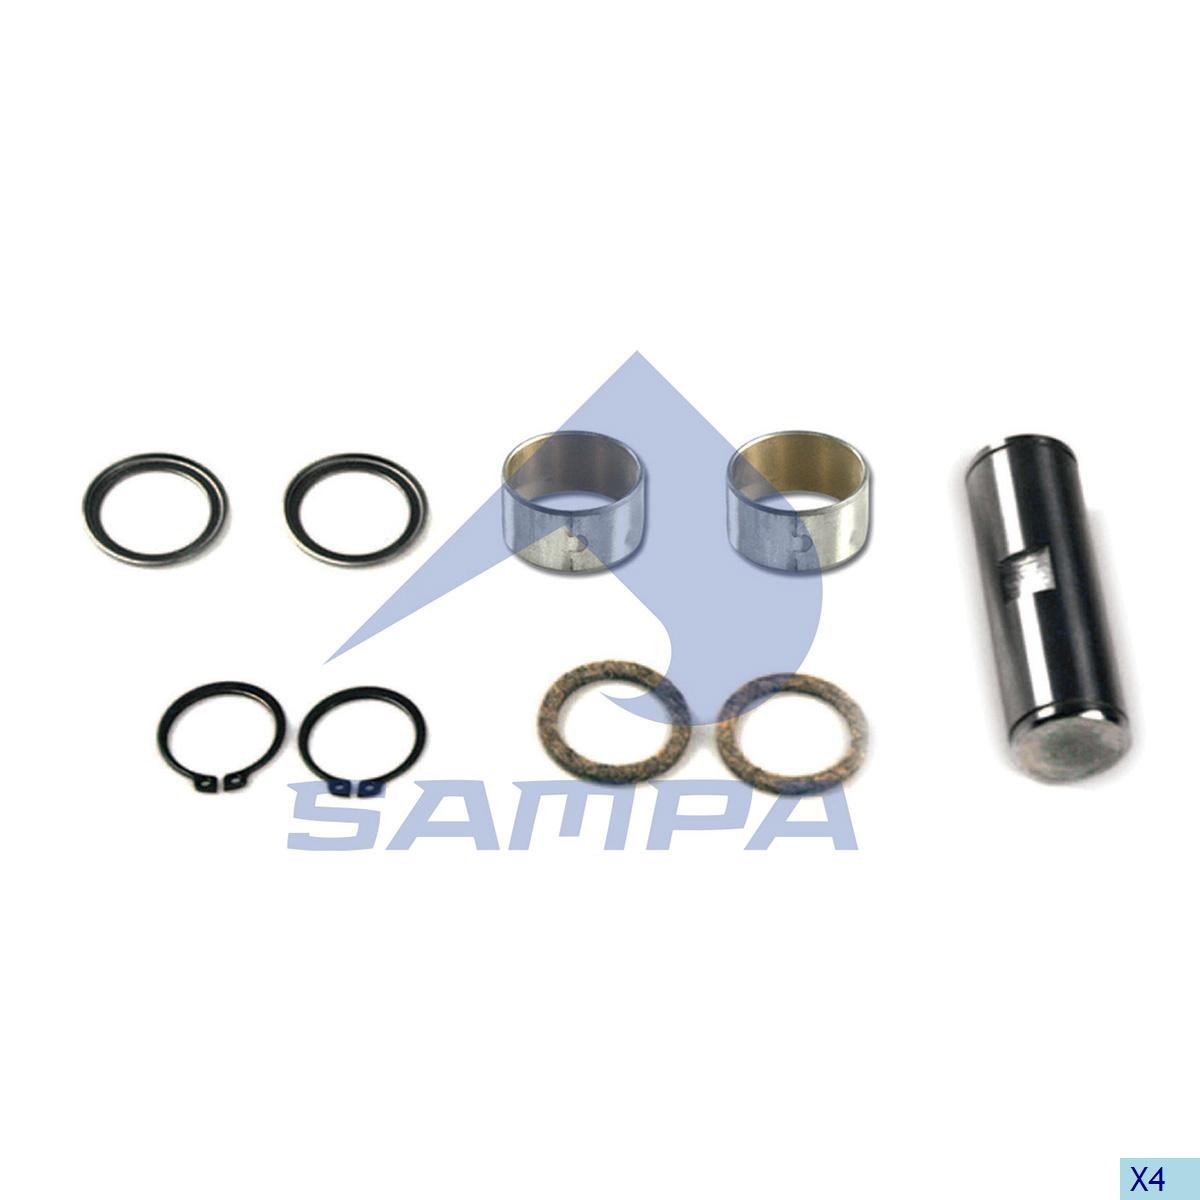 Repair Kit, Brake Shoe, Daf, Brake